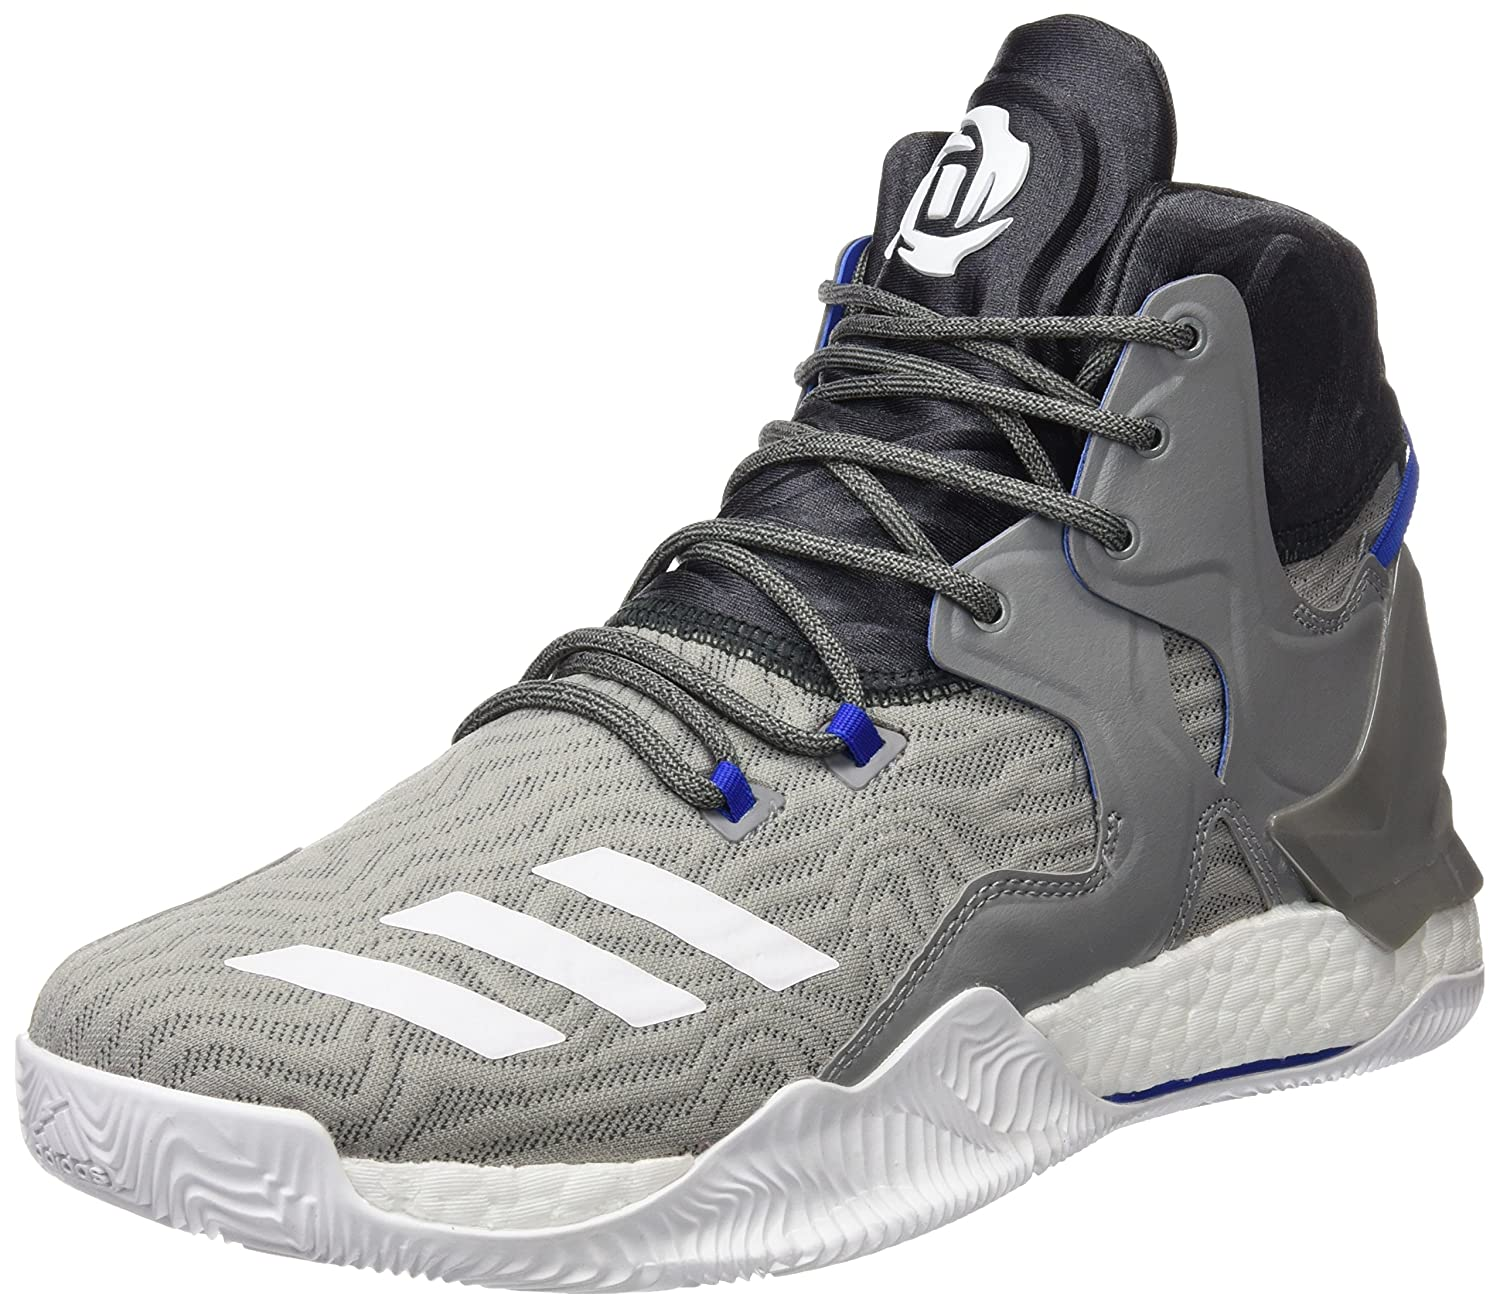 new arrival 12580 390b6 Adidas D Rose 7 Mens Basketball Shoes Amazon.co.uk Sports  O